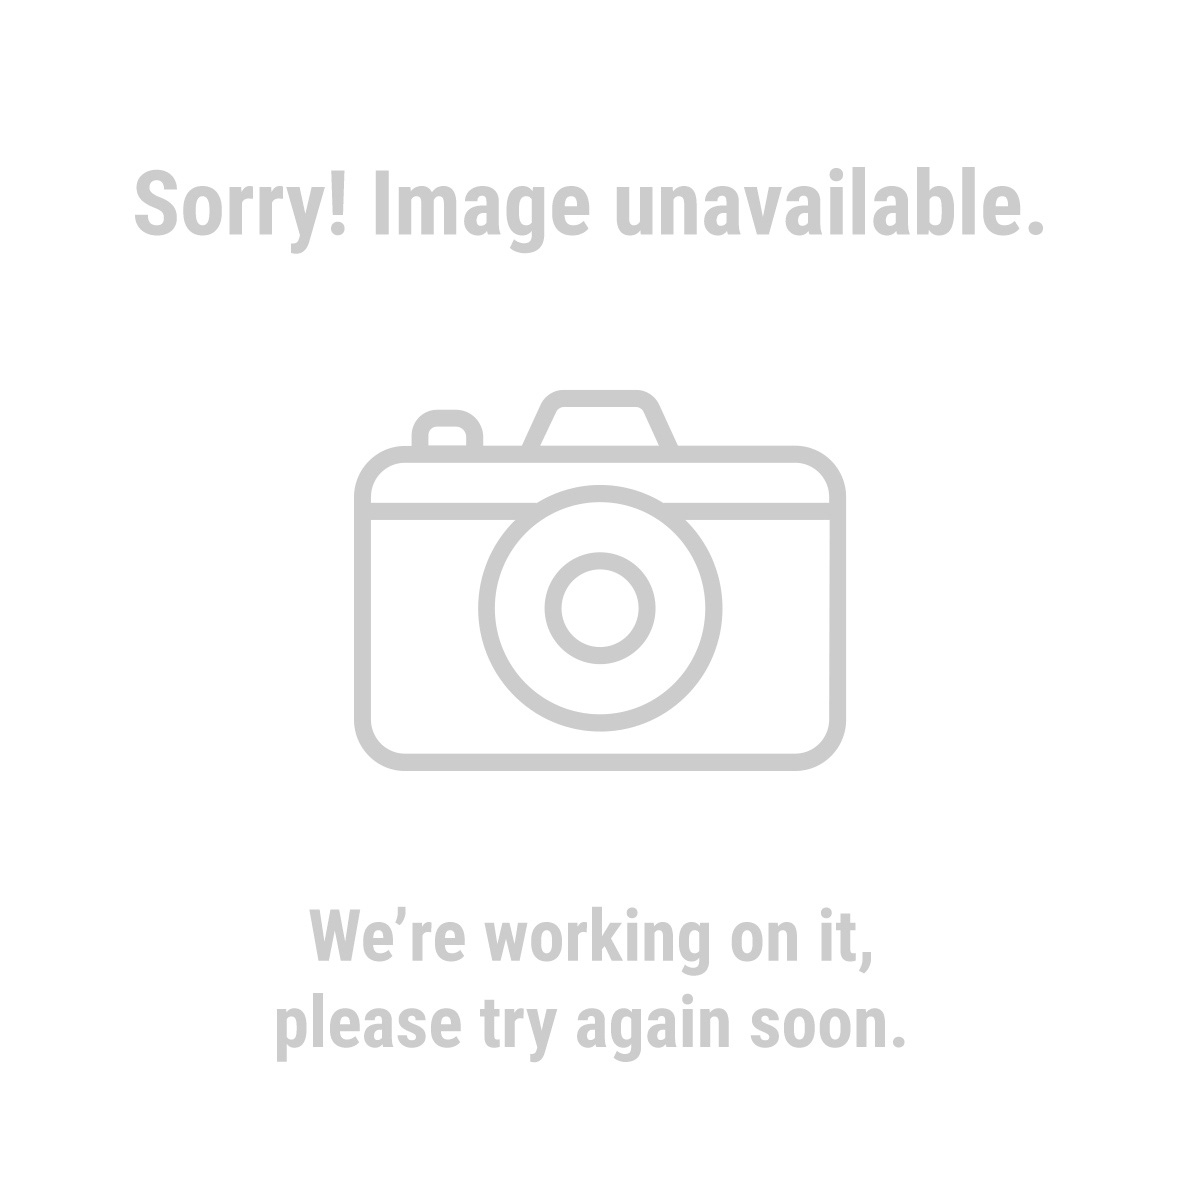 "U.S. General Pro 67681 Roller Cabinet, 56"", 11 Drawer Industrial"